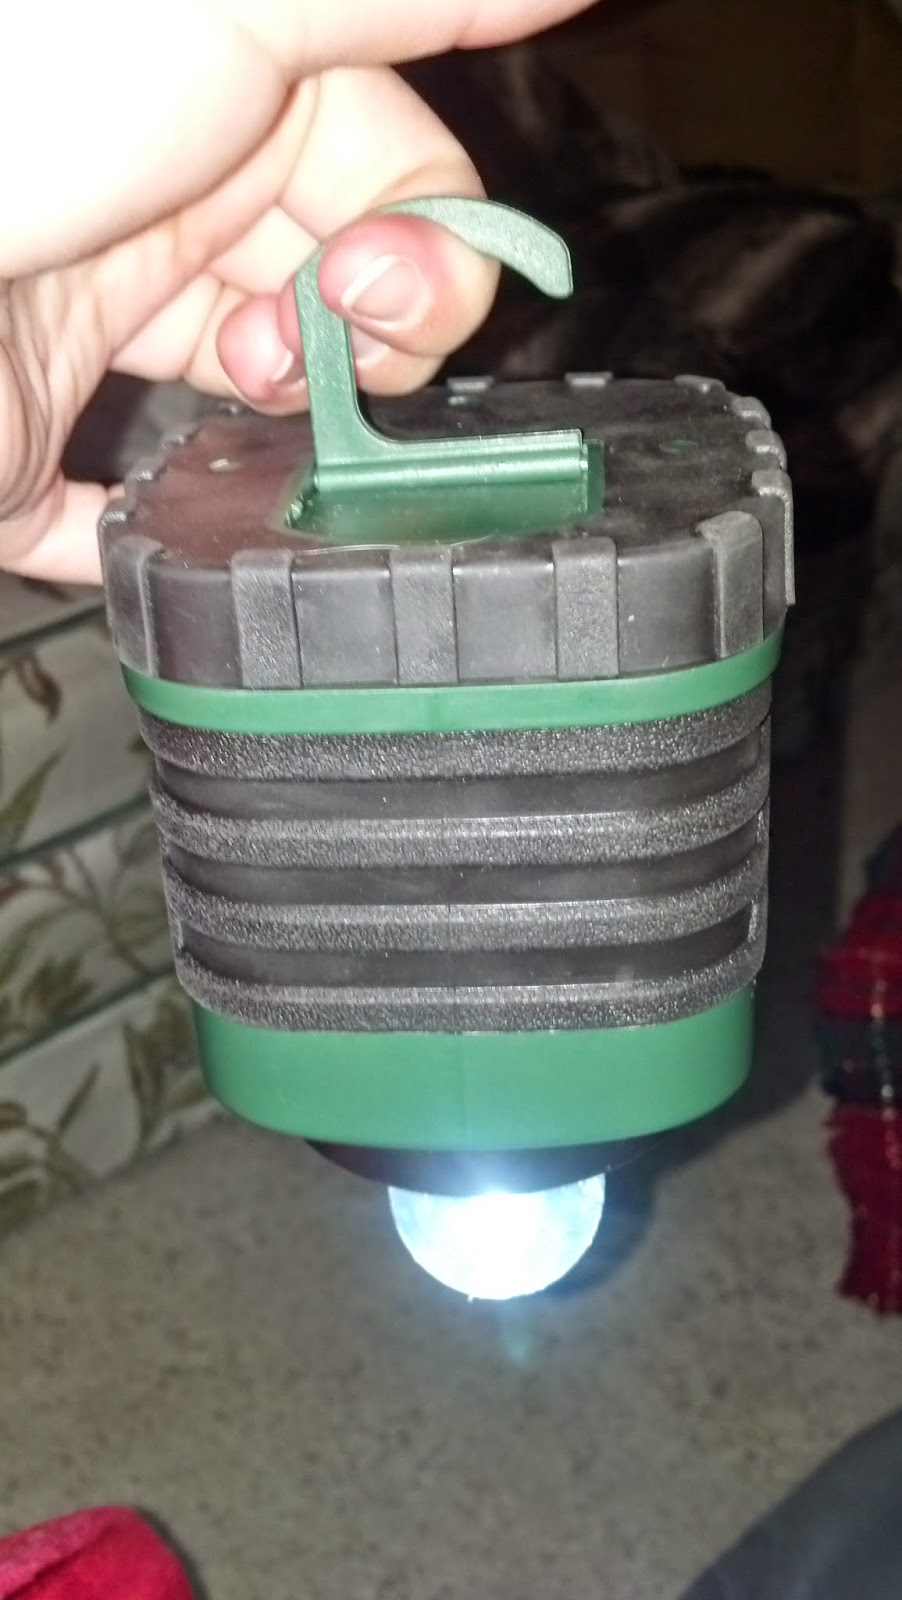 AYL StarLight 330 LED Lantern Review